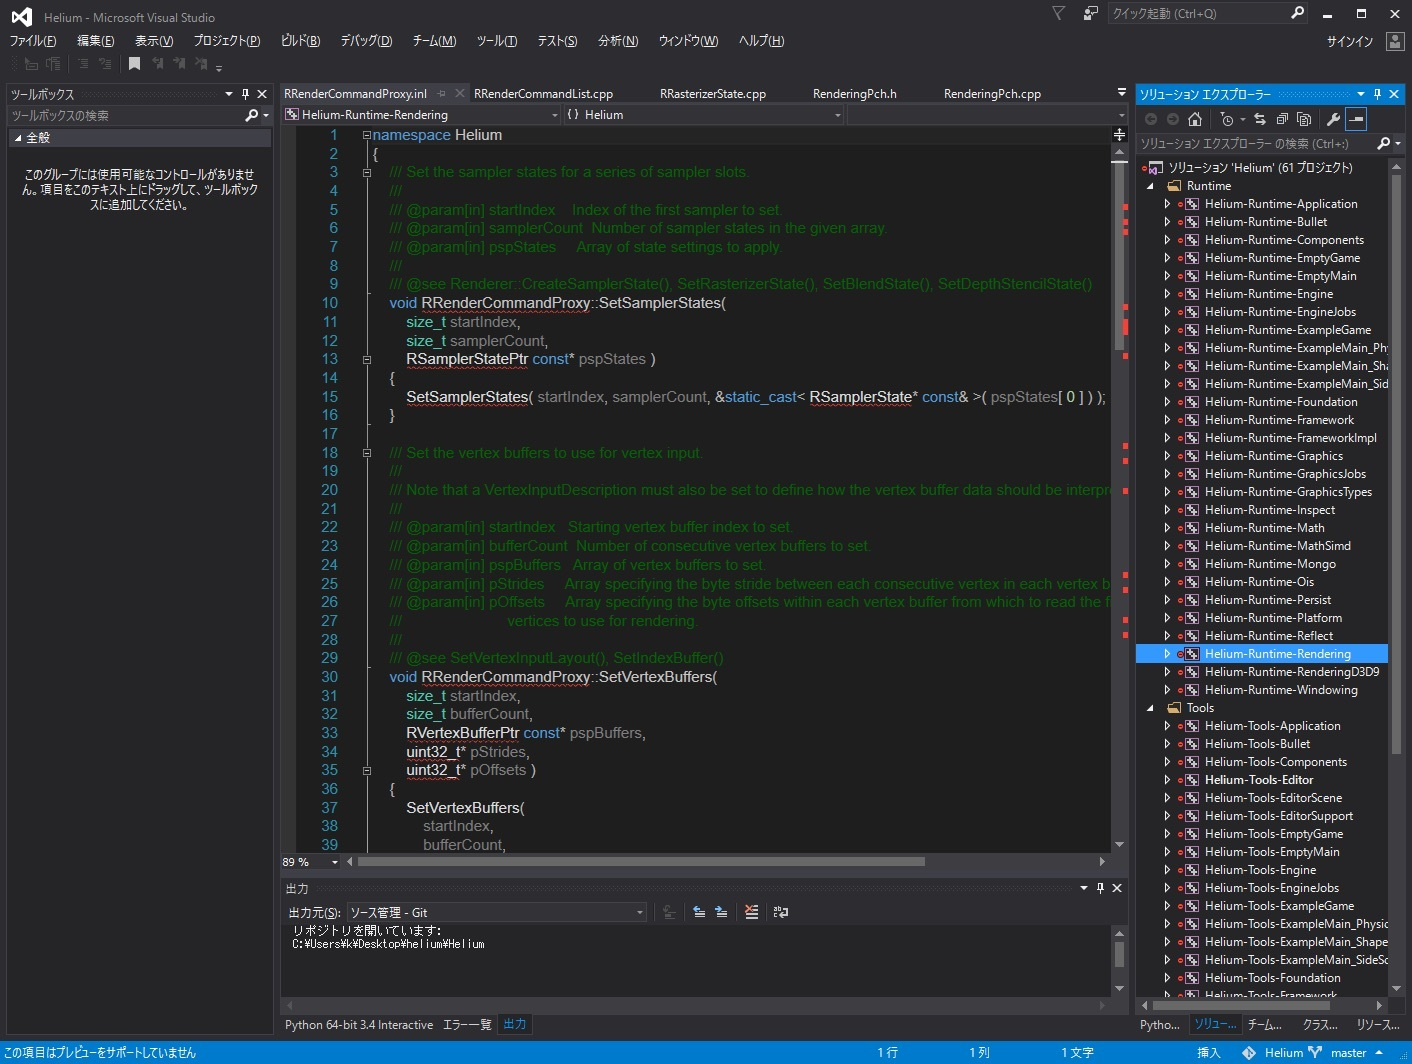 Helium VisualStudio Solution